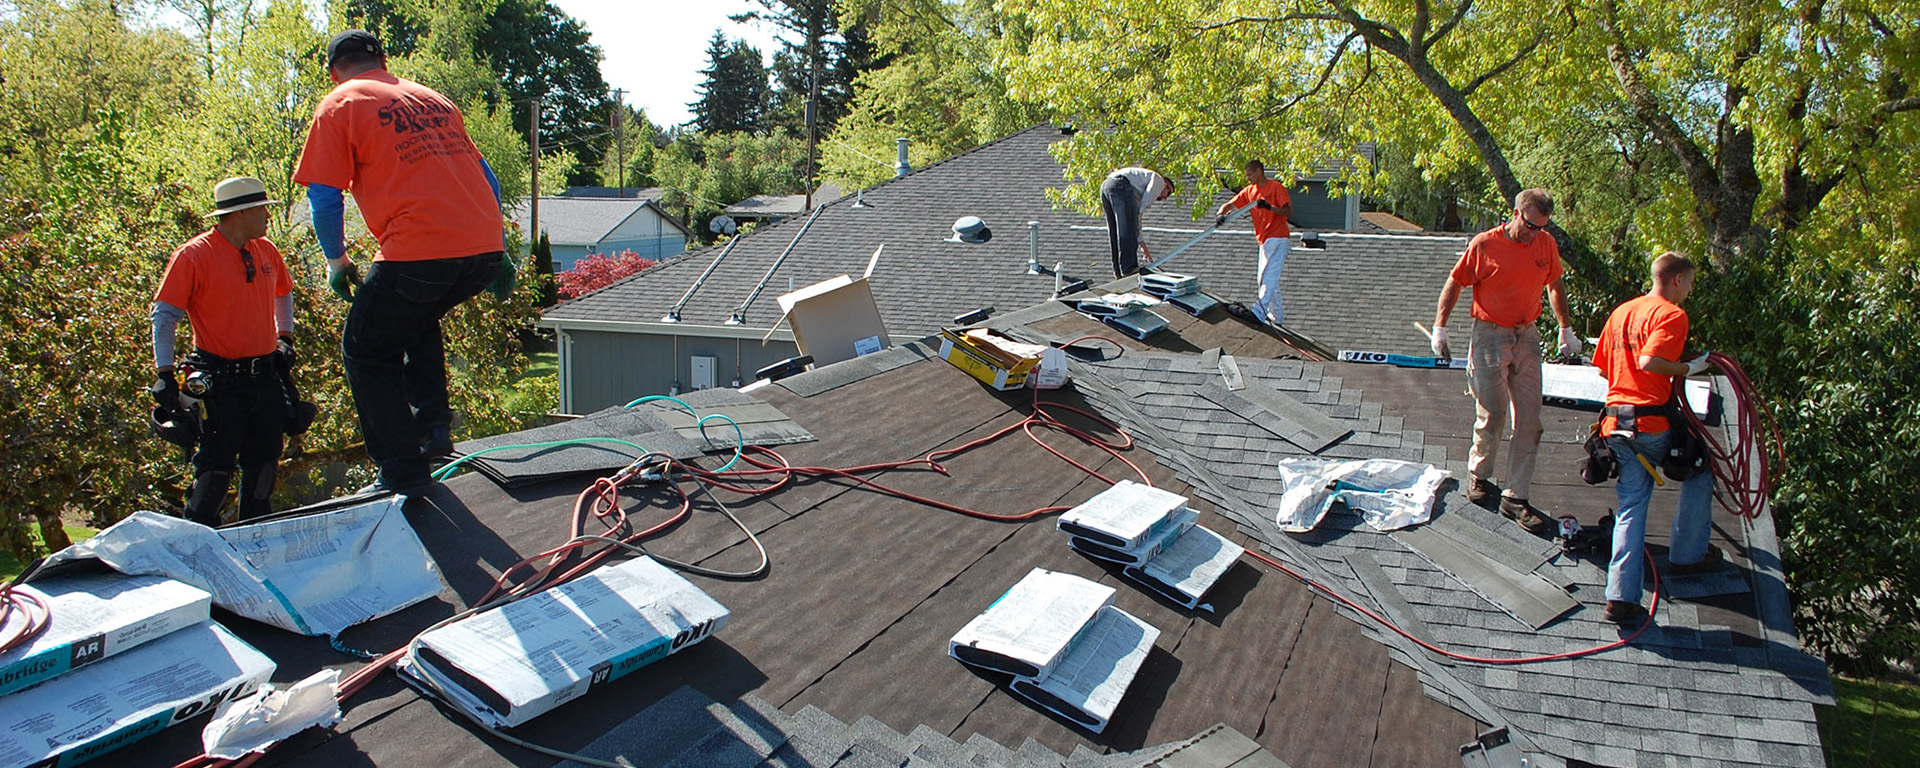 Bravo Roof Installation Contractors Within a Click